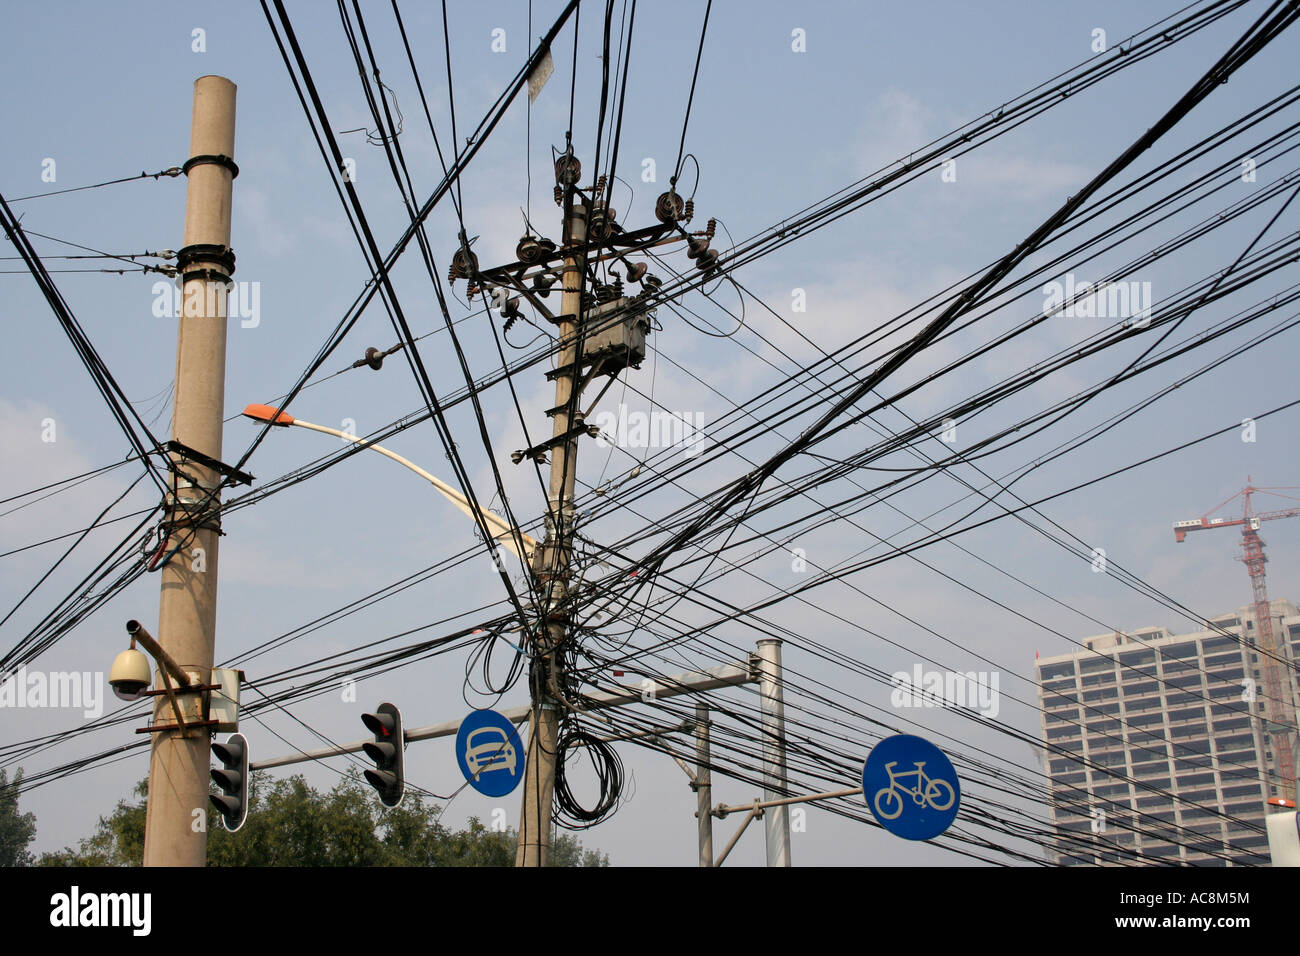 Electrical Wire China Stock Photos & Electrical Wire China Stock ...